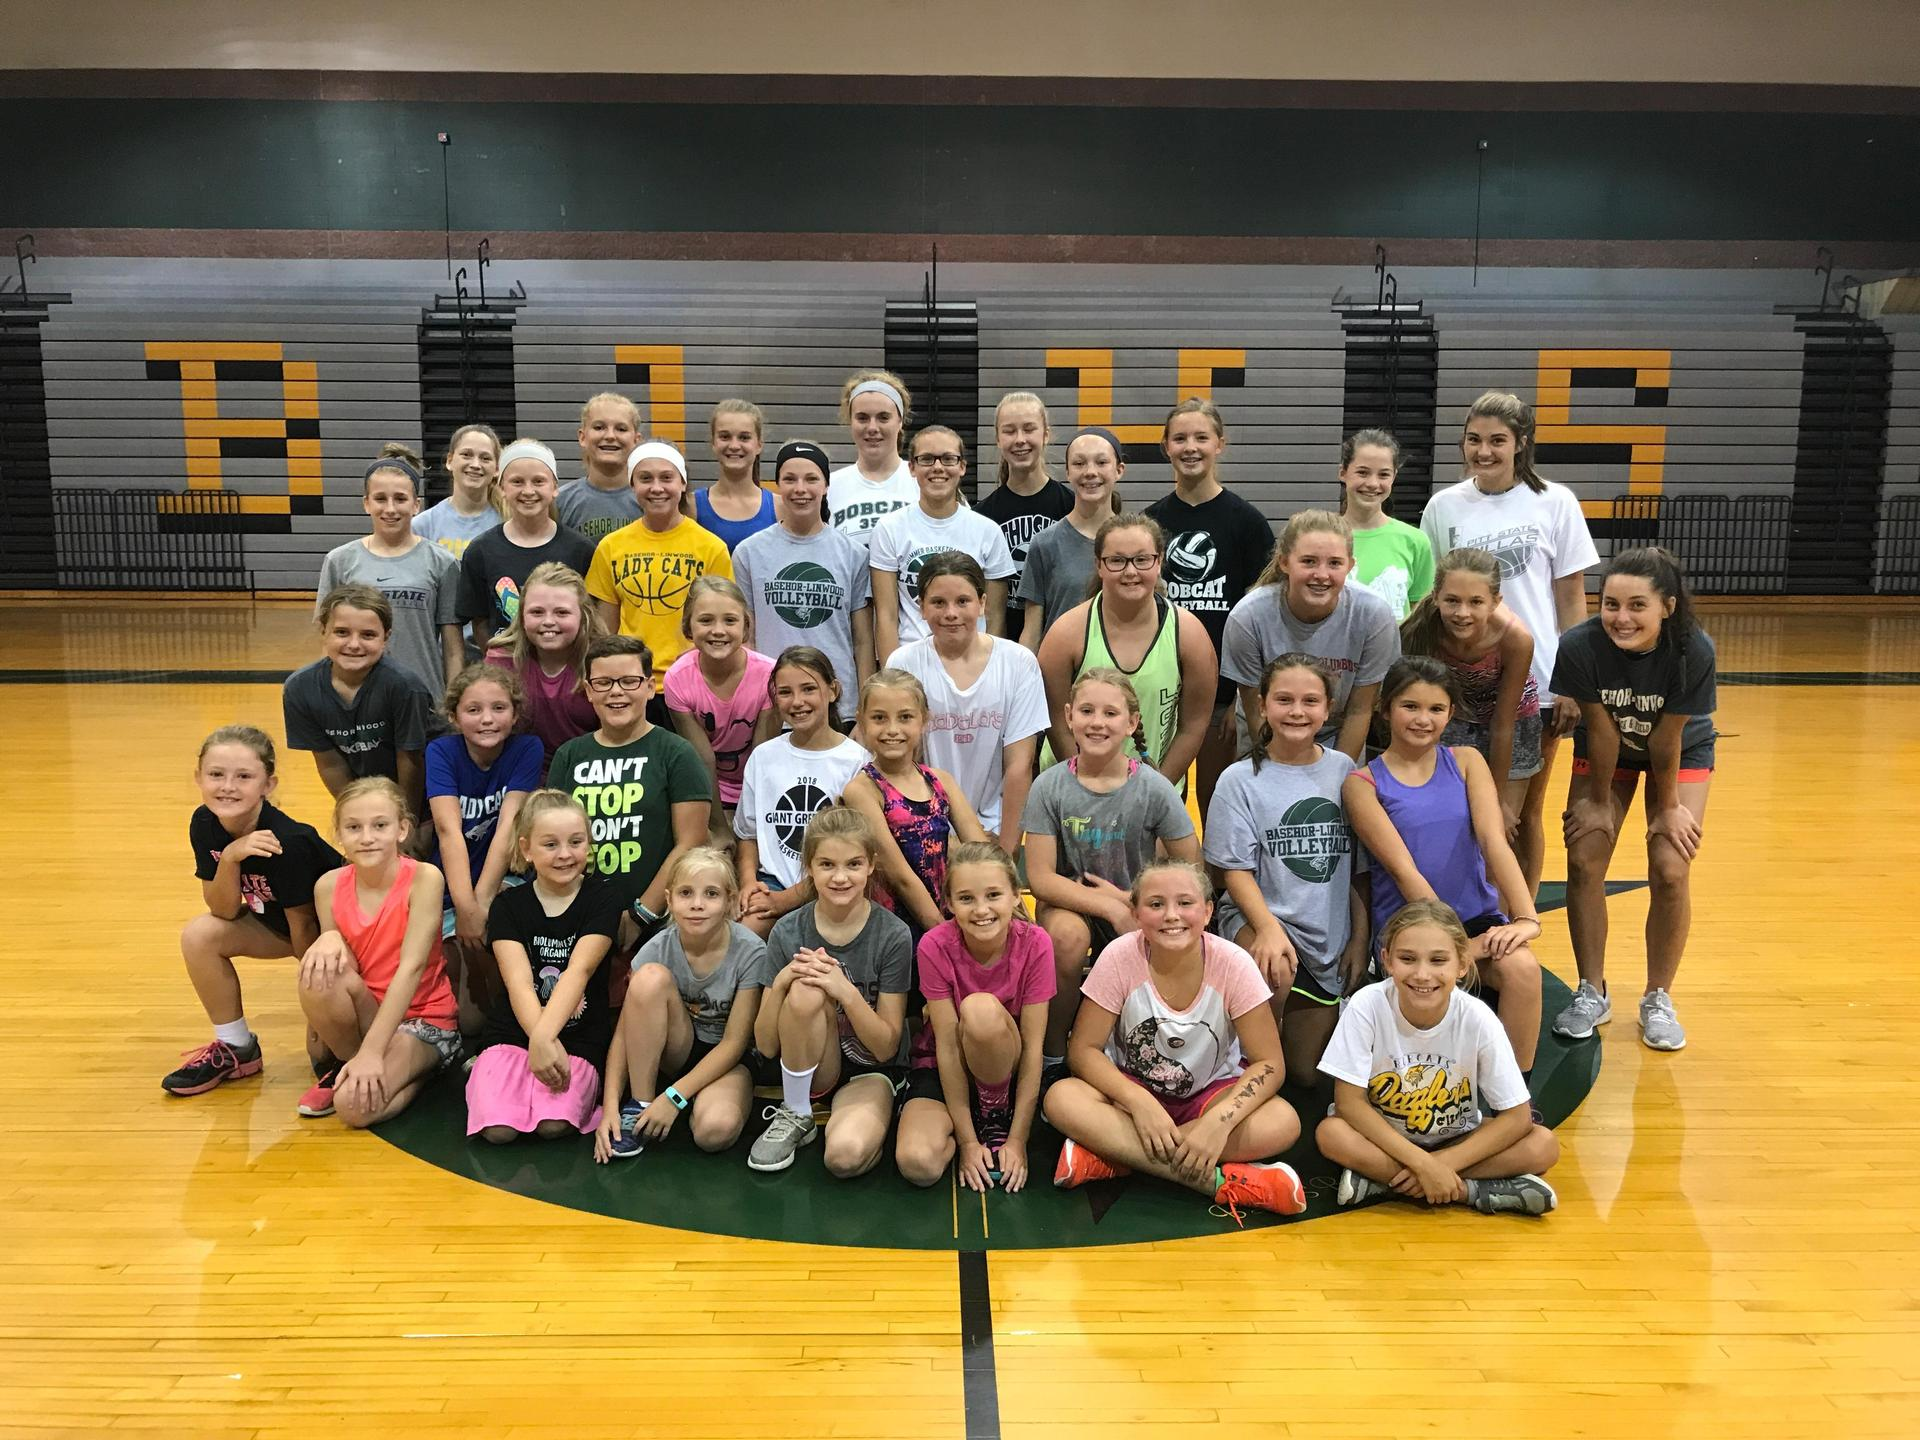 2018 Summer Youth Camp